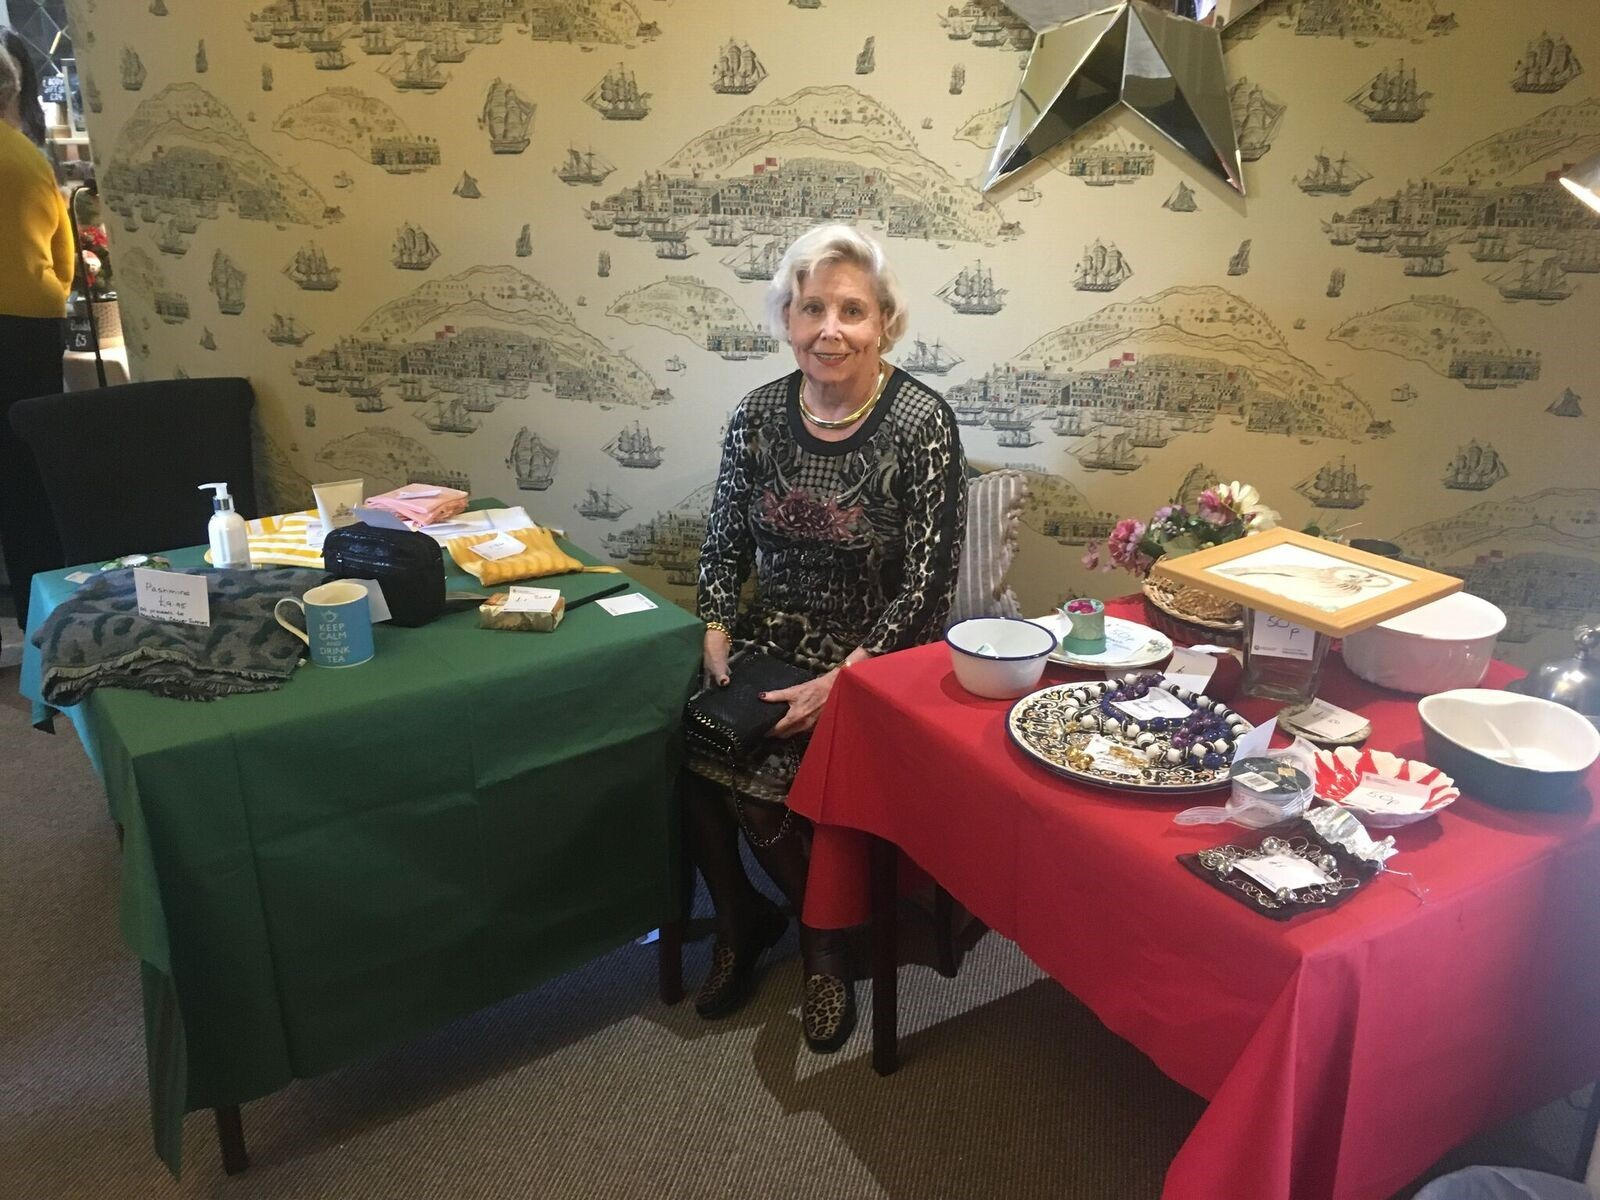 The Audley Clevedon Christmas fair raised £530 for Macmillan Cancer Support